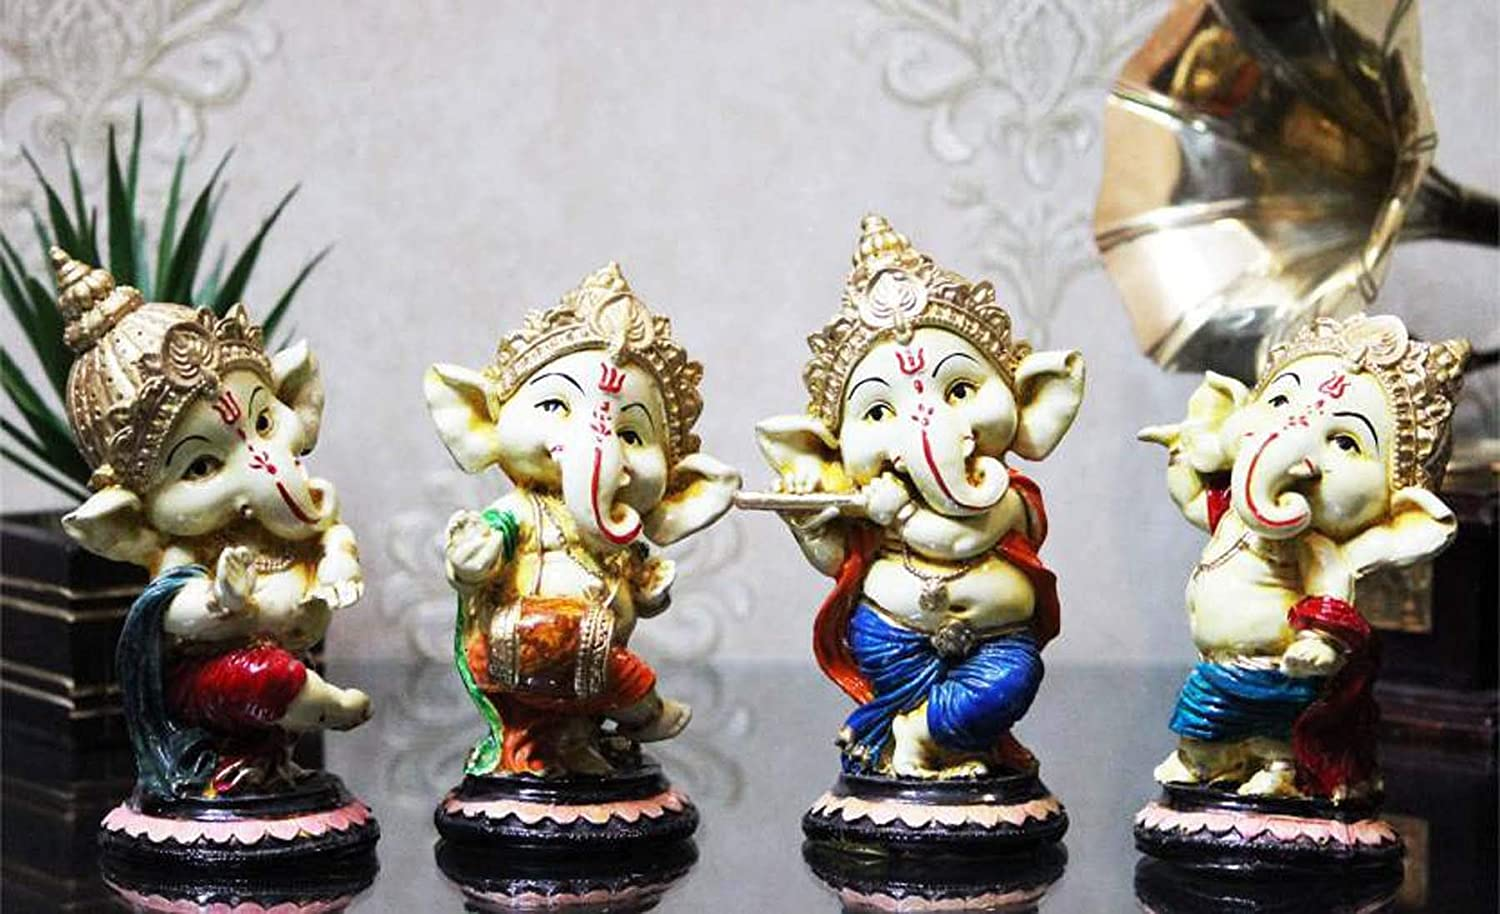 Set of 4 Handcrafted Meditating Lord Ganesha Idols Statue for Home Decor Decorative Showpiece with Musical Instruments